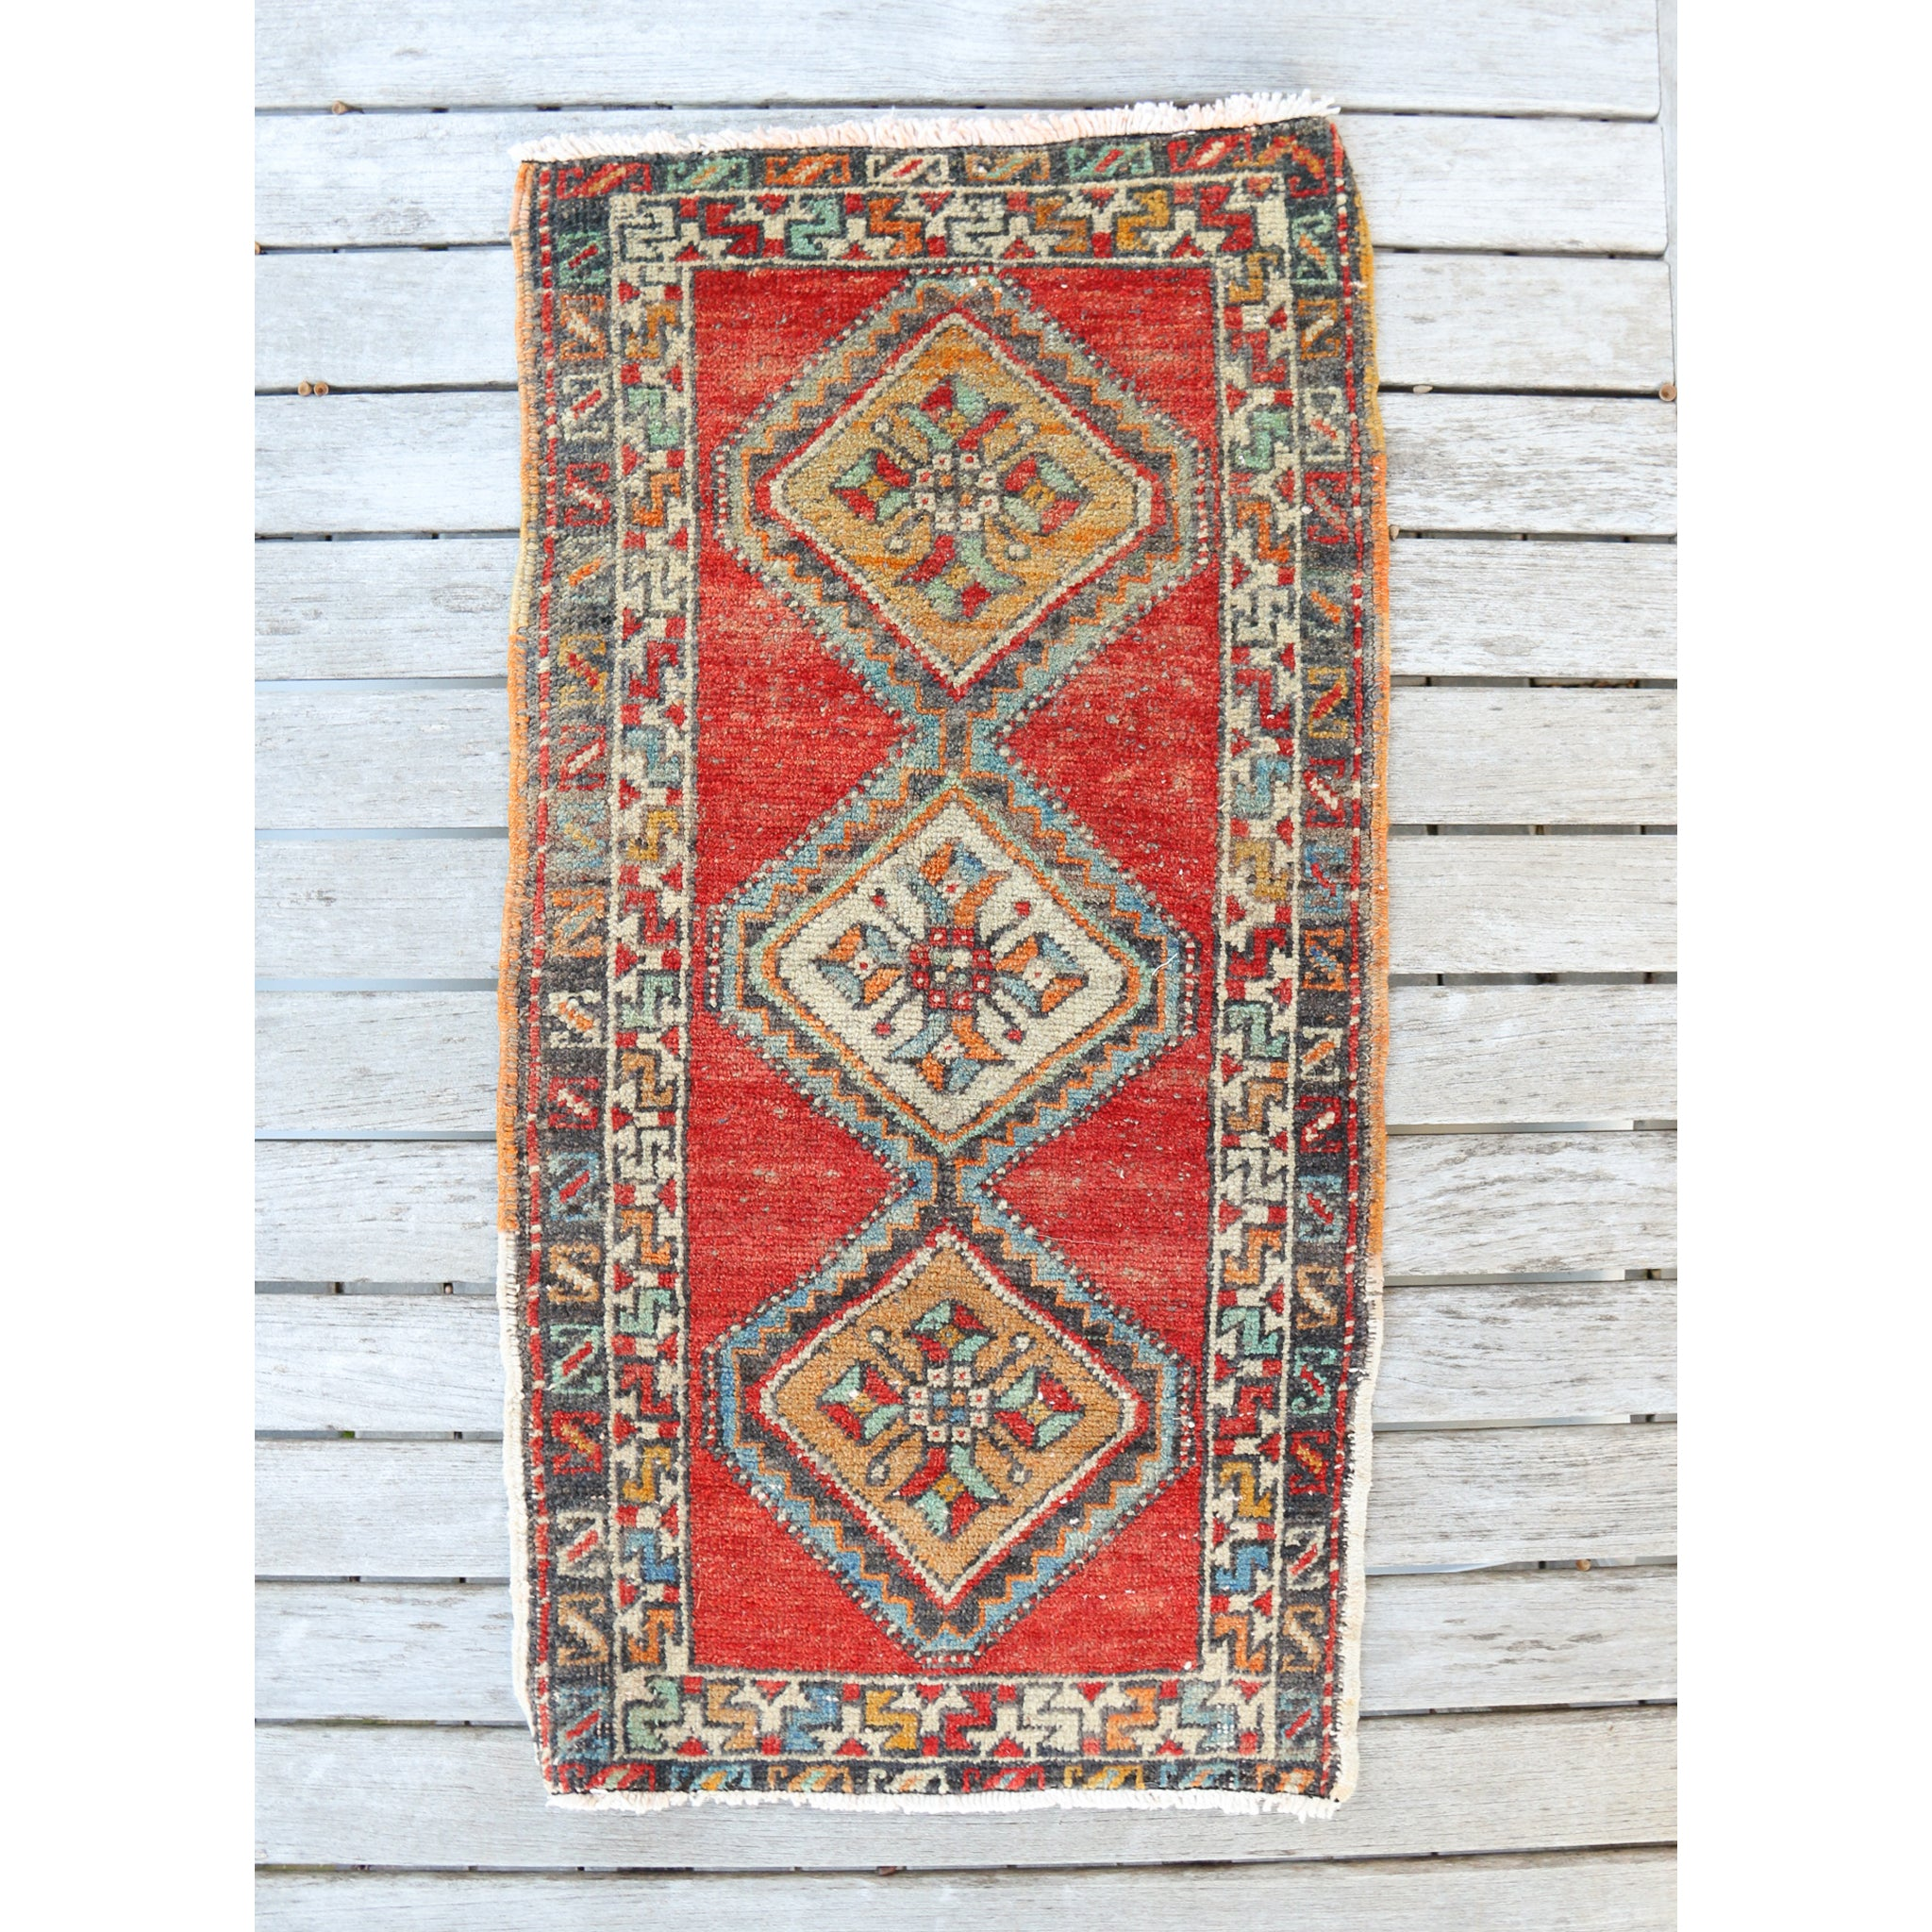 NT20 Small Handwoven Vintage Rug 1'7x3'1